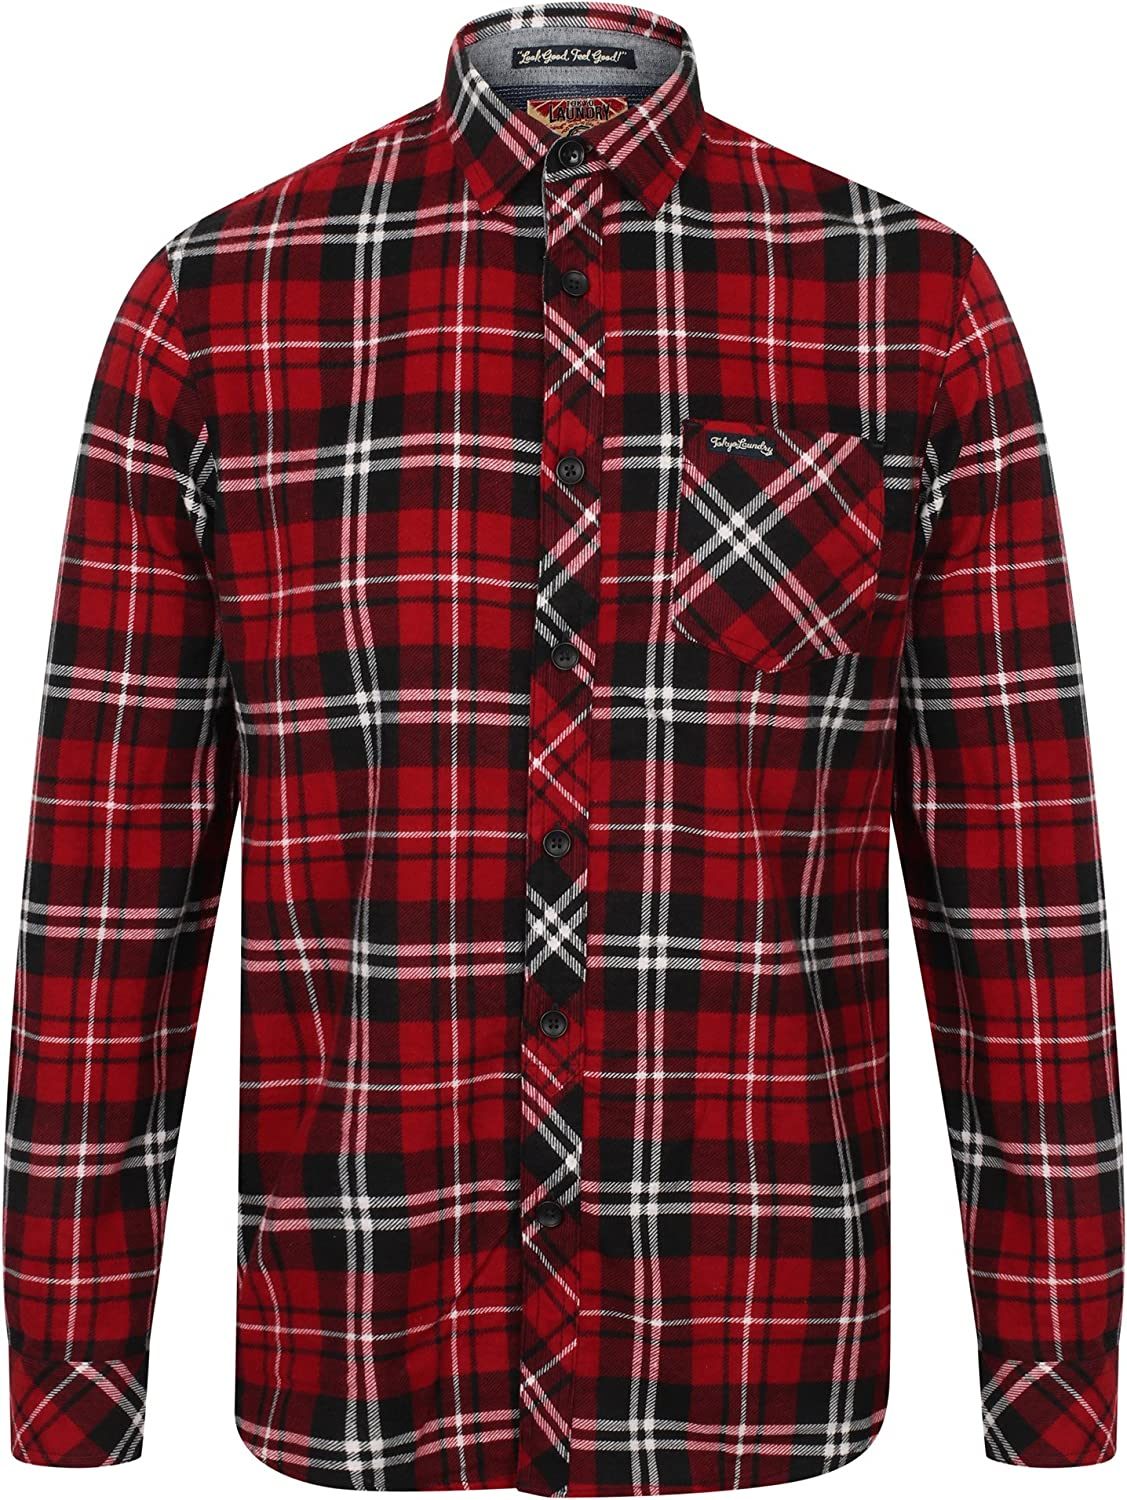 Tokyo Laundry Mens Dieppe Long Sleeve Cotton Flannel Shirt